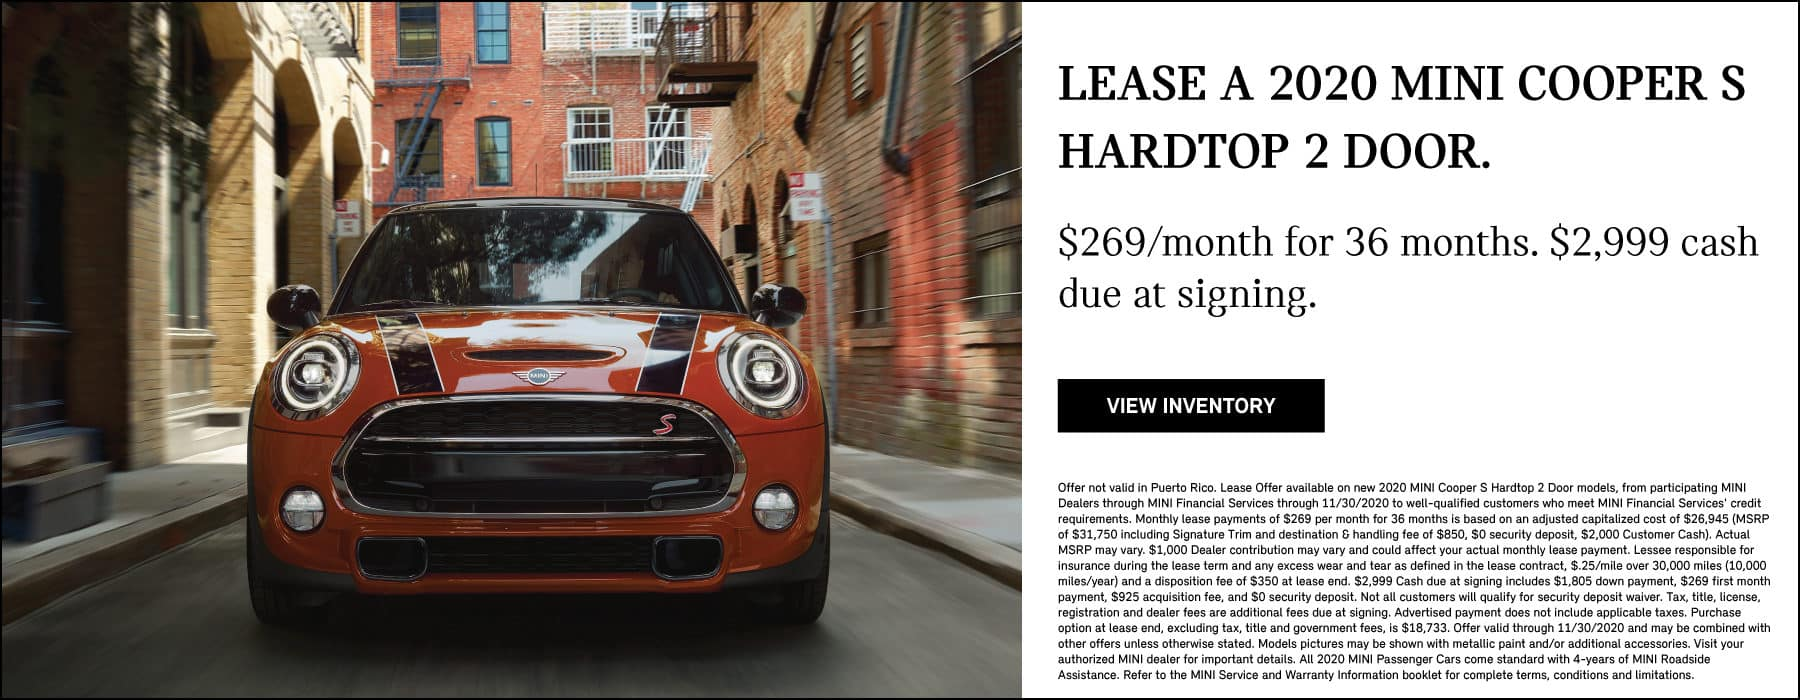 LEASE A 2020 MINI COOPER S HARDTOP 2 DOOR FOR $269 A MONTH. SEE DEALER FOR COMPLETE DETAILS.